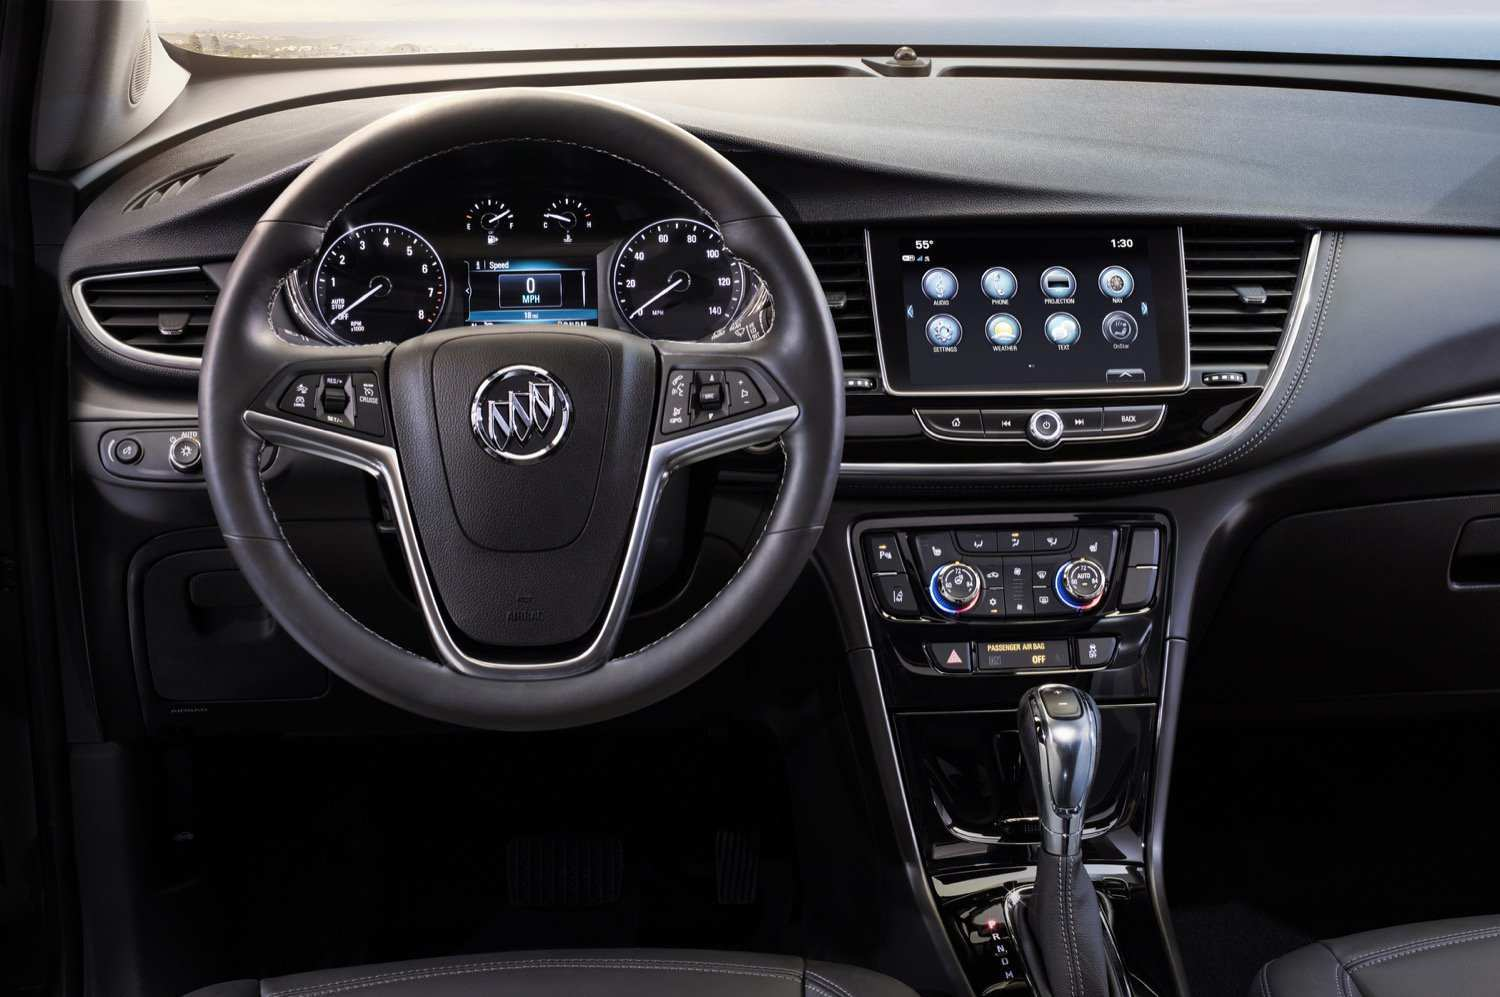 81 A 2020 Buick Encore Interior Photos Redesign